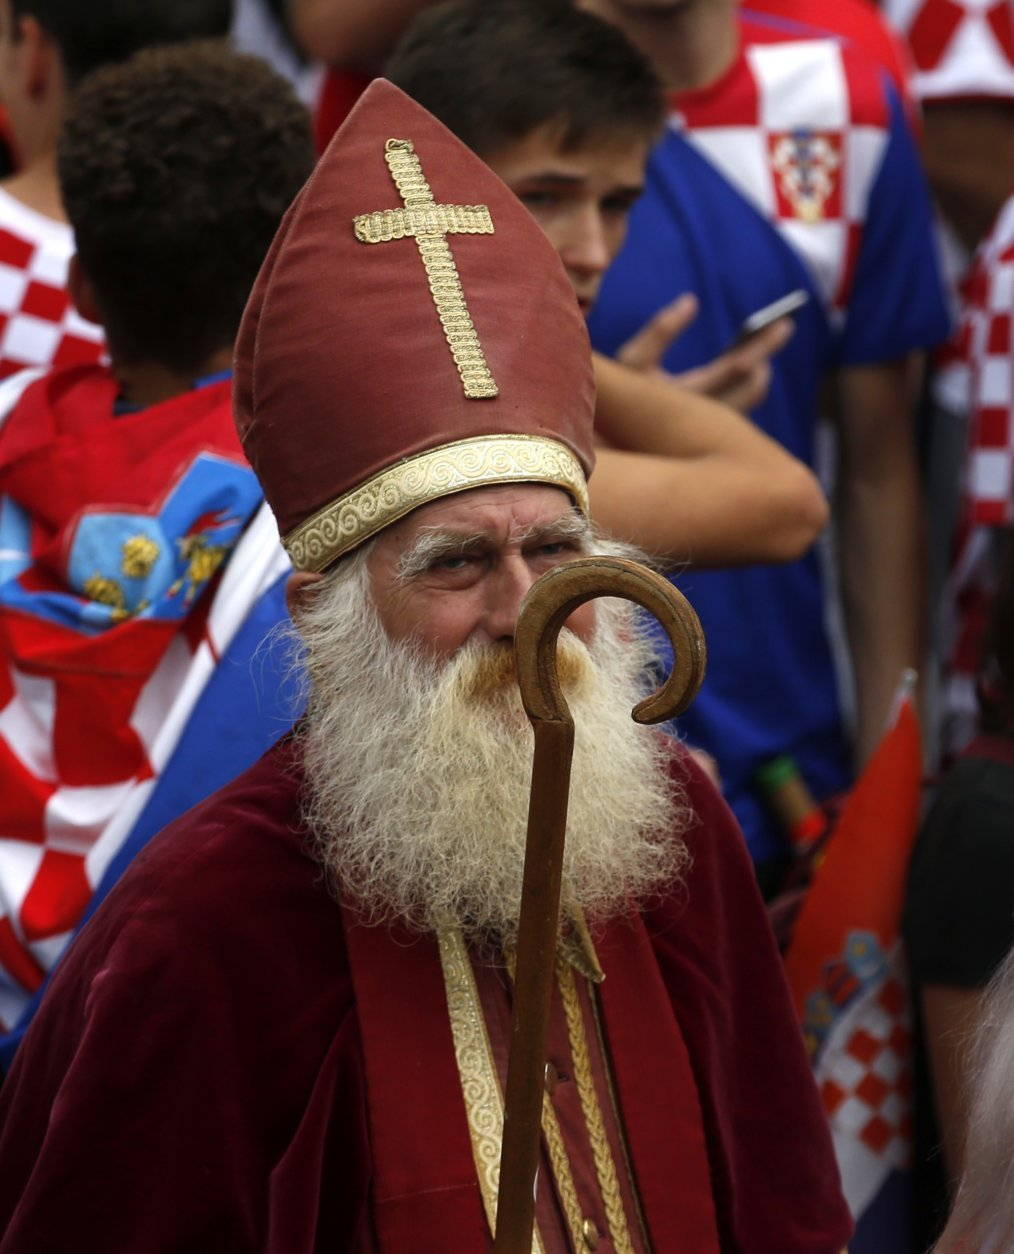 A priest is seen in the crowds during a television broadcast of the Russia 2018 World Cup match between France and Croatia in downtown Zagreb, Croatia, Sunday, July 15, 2018. (AP Photo/Darko Vojinovic)